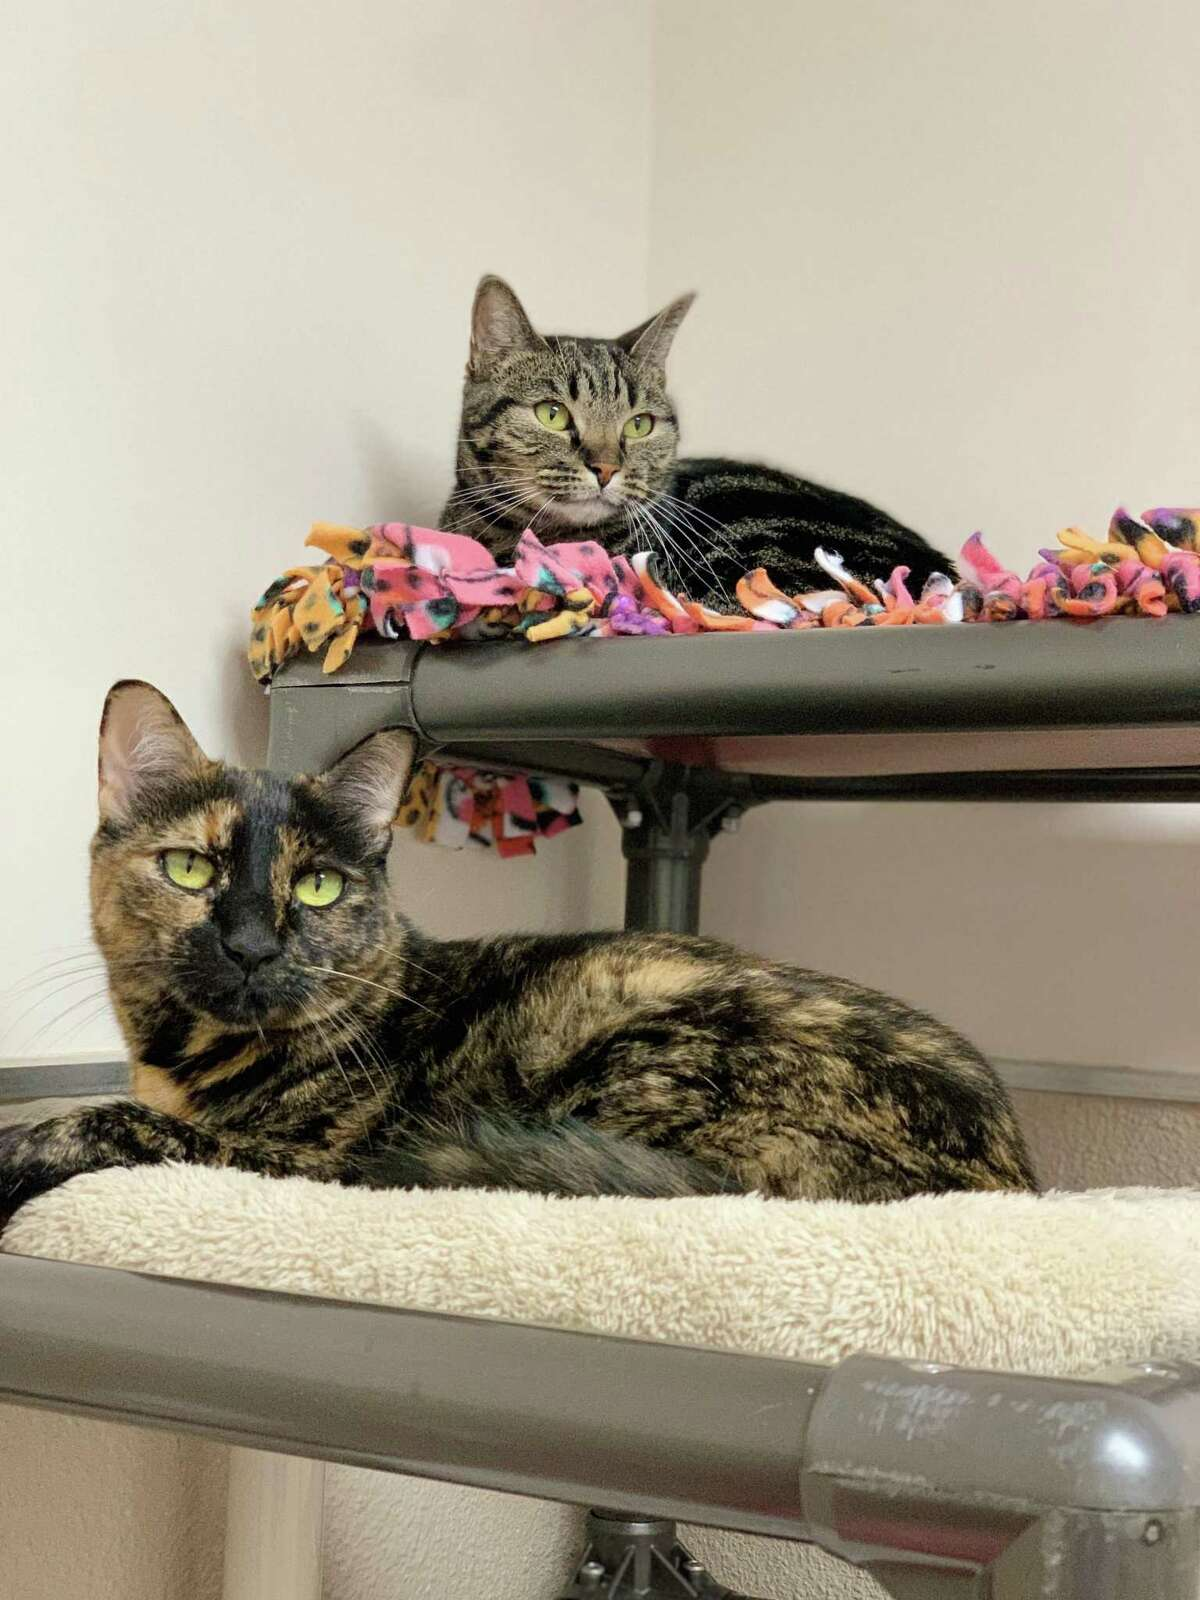 No sibling rivalry here! Sisters Autumn and Elsa love each other and are looking for a home together at the Connecticut Humane Society. They weren't littermates, but in their minds, they are siblings through and through. Autumn, the tiger tabby, is 4 years old, and Elsa, the tortie, is 7 years old. They enjoy laying near each other and grooming each other, but they soak up attention from people, too. They are also smart cookies and know how to open doors! This pair would do well in a quiet household, as they love to nap and lounge around, and kids who are a bit older would be best for them. Visit CThumane.org/adopt to learn more. An online application can be found in each pet's profile.